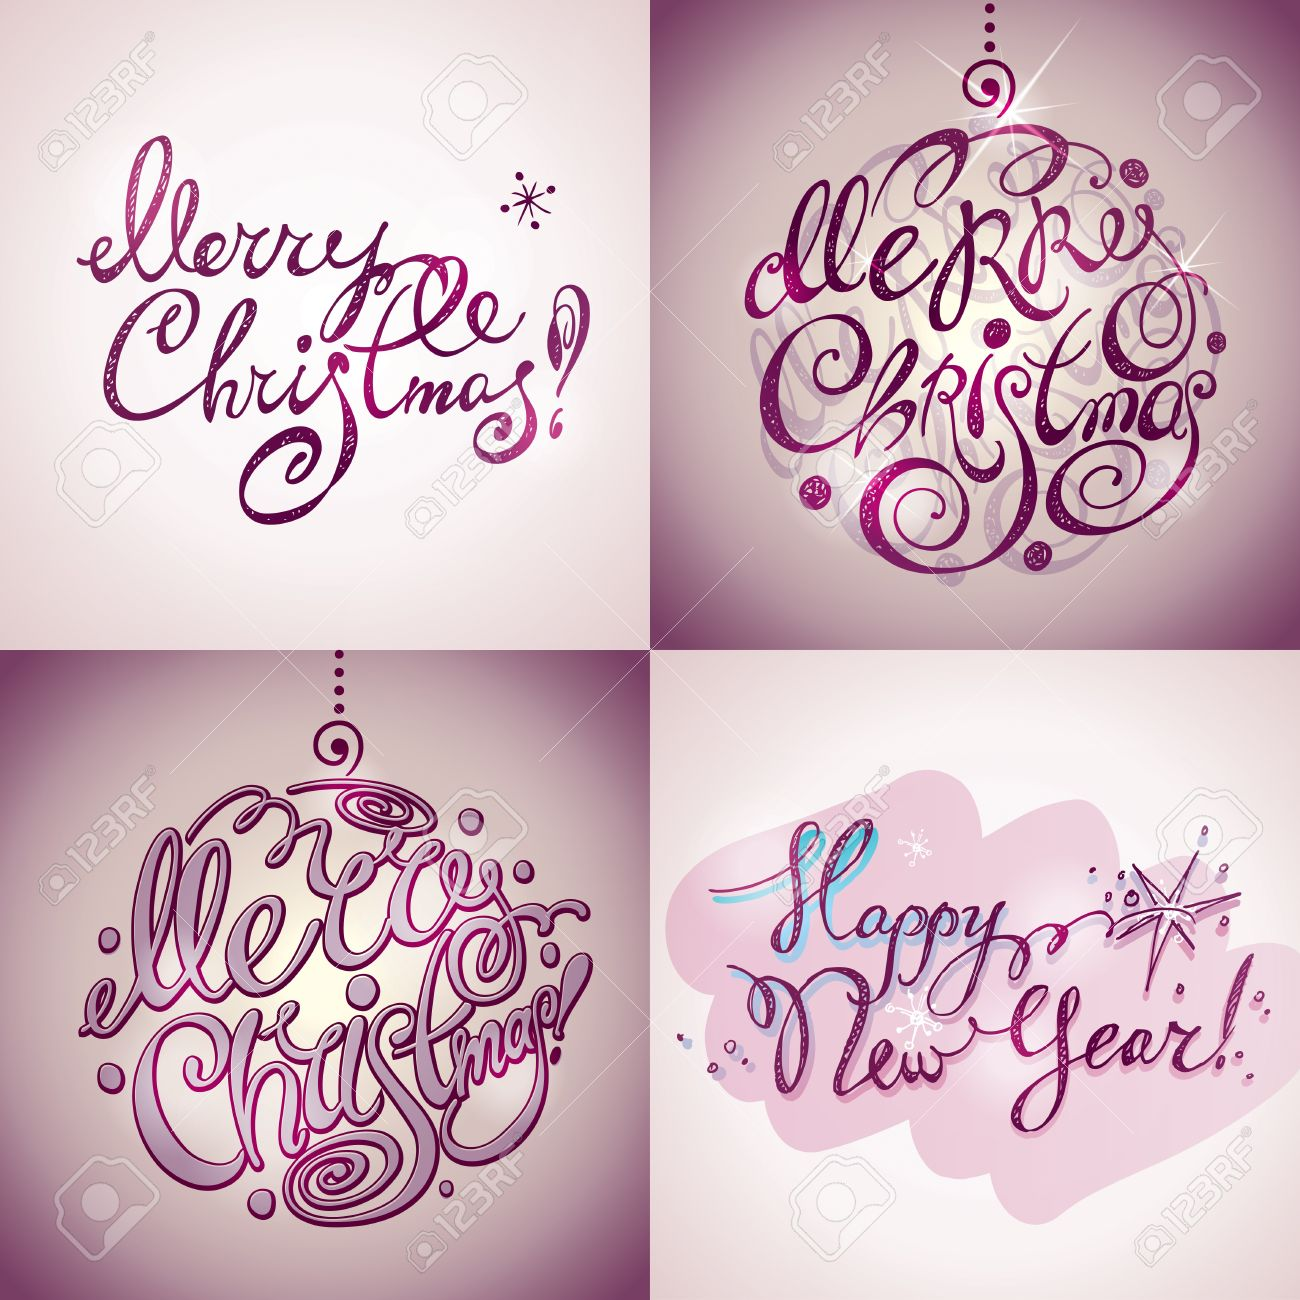 christmas card merry christmas and happy new year lettering by four styles of a writing